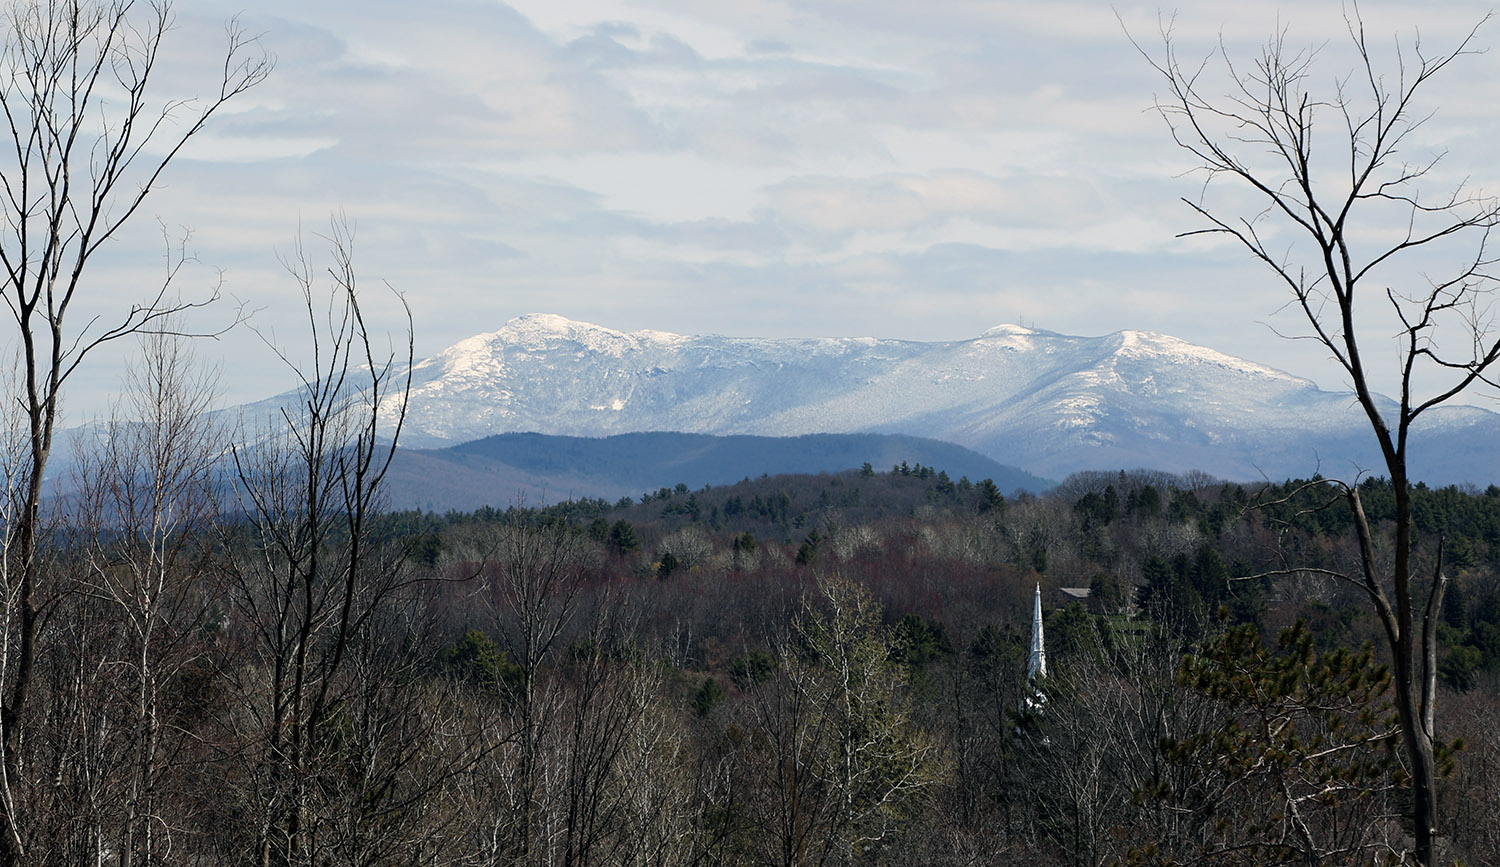 An image taken from Interstate 89 of Mount Mansfield in Vermont covered with snow after a late-April snowstorm